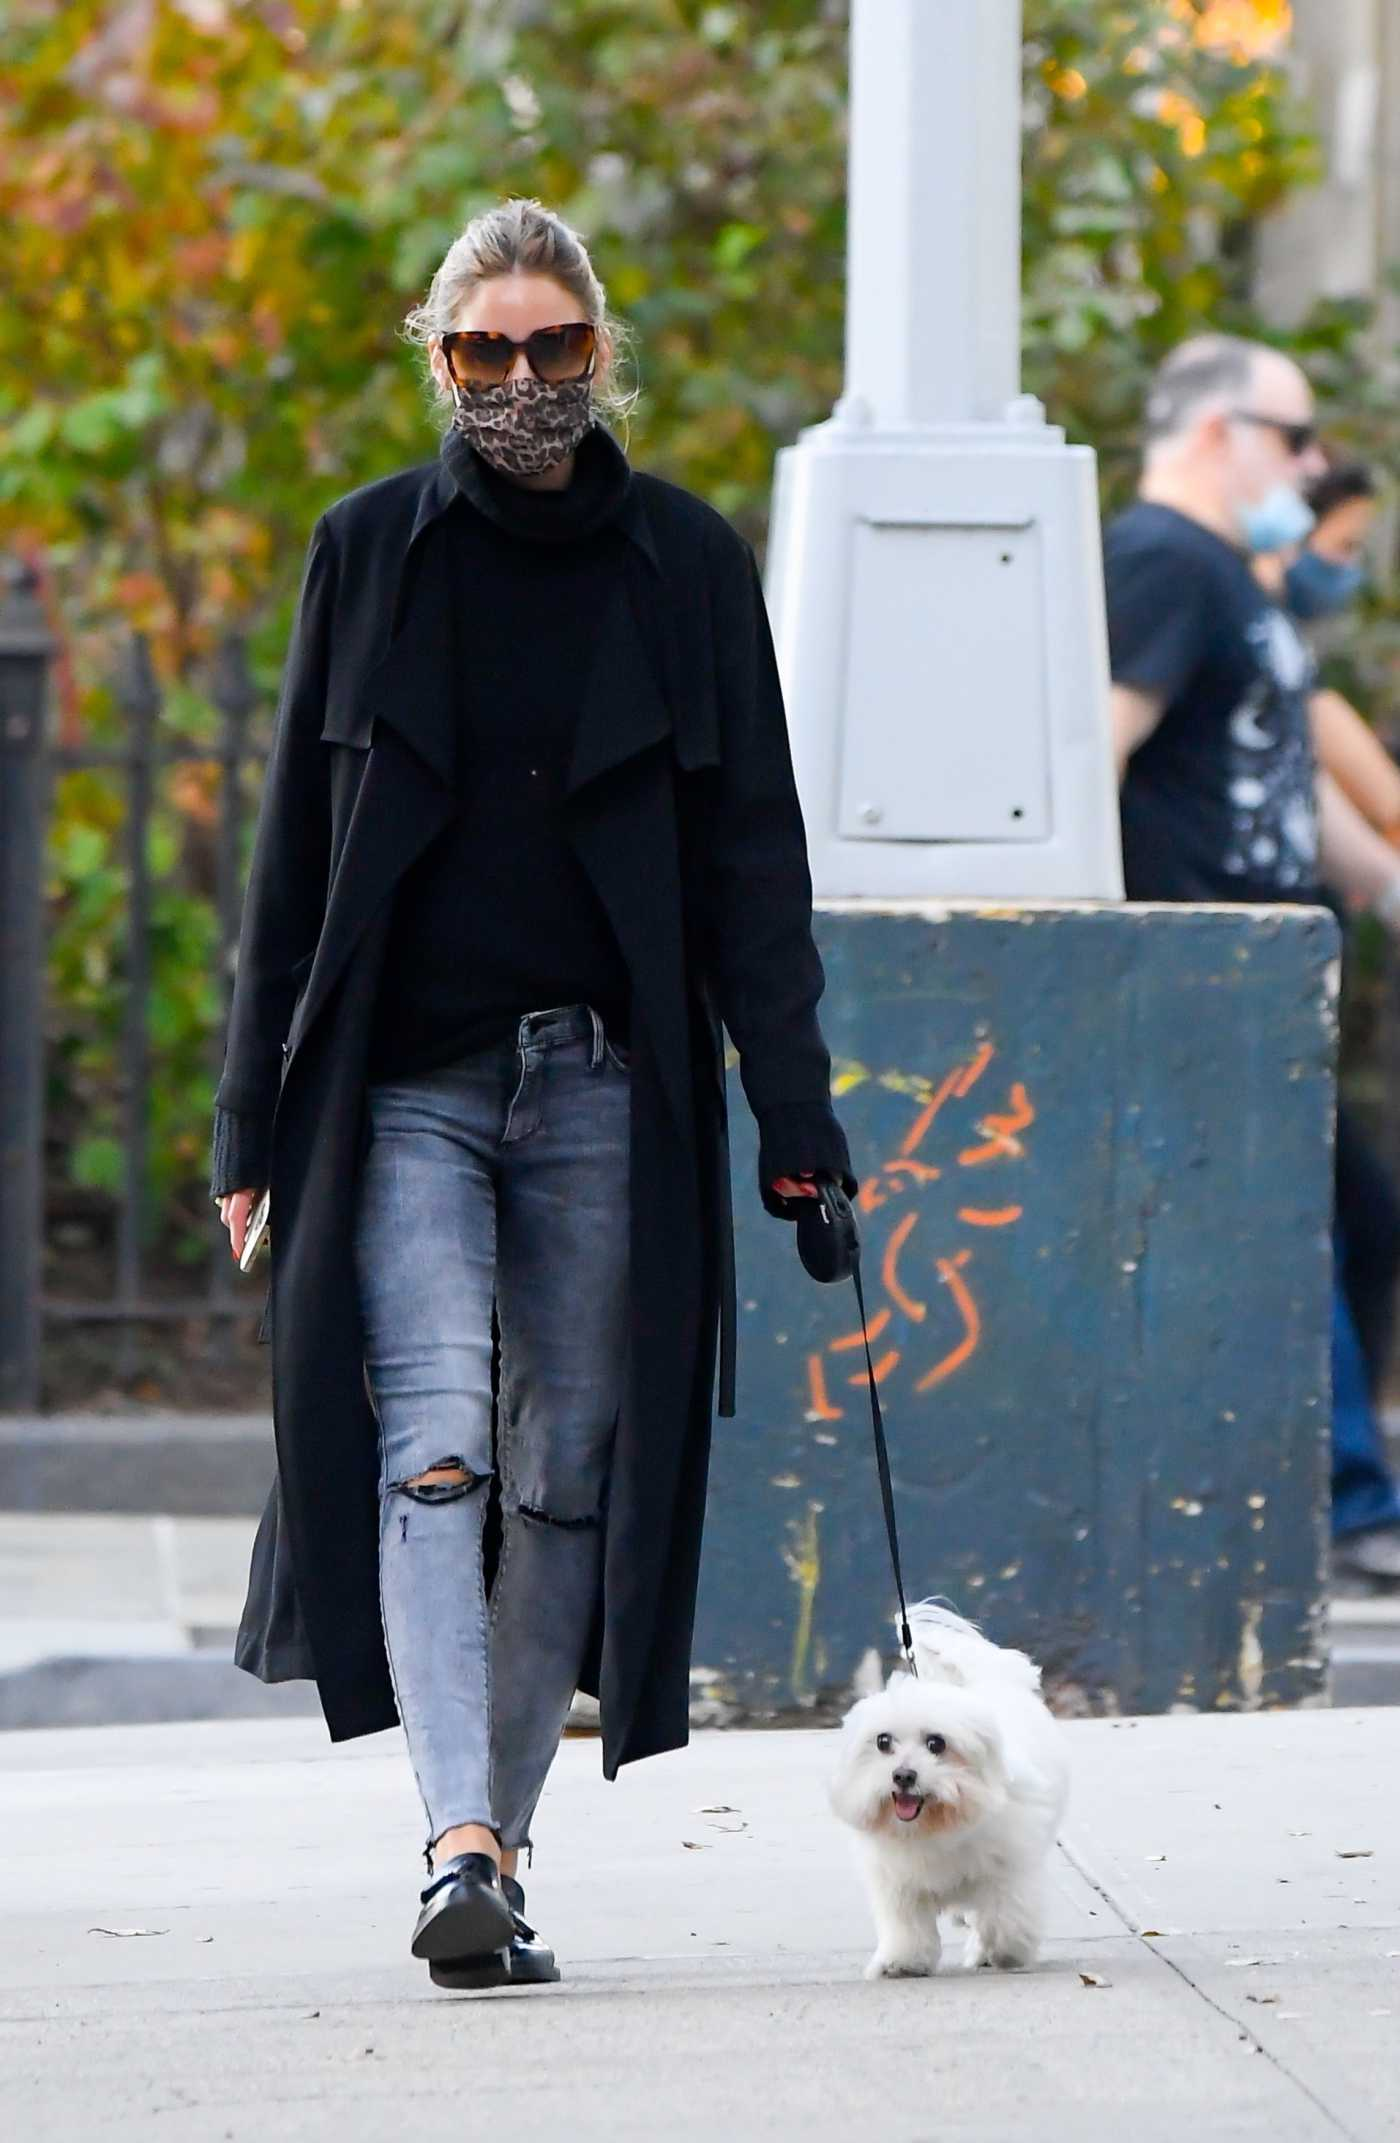 Olivia Palermo in a Black Trench Coat Walks Her Dog in New York 11/10/2020